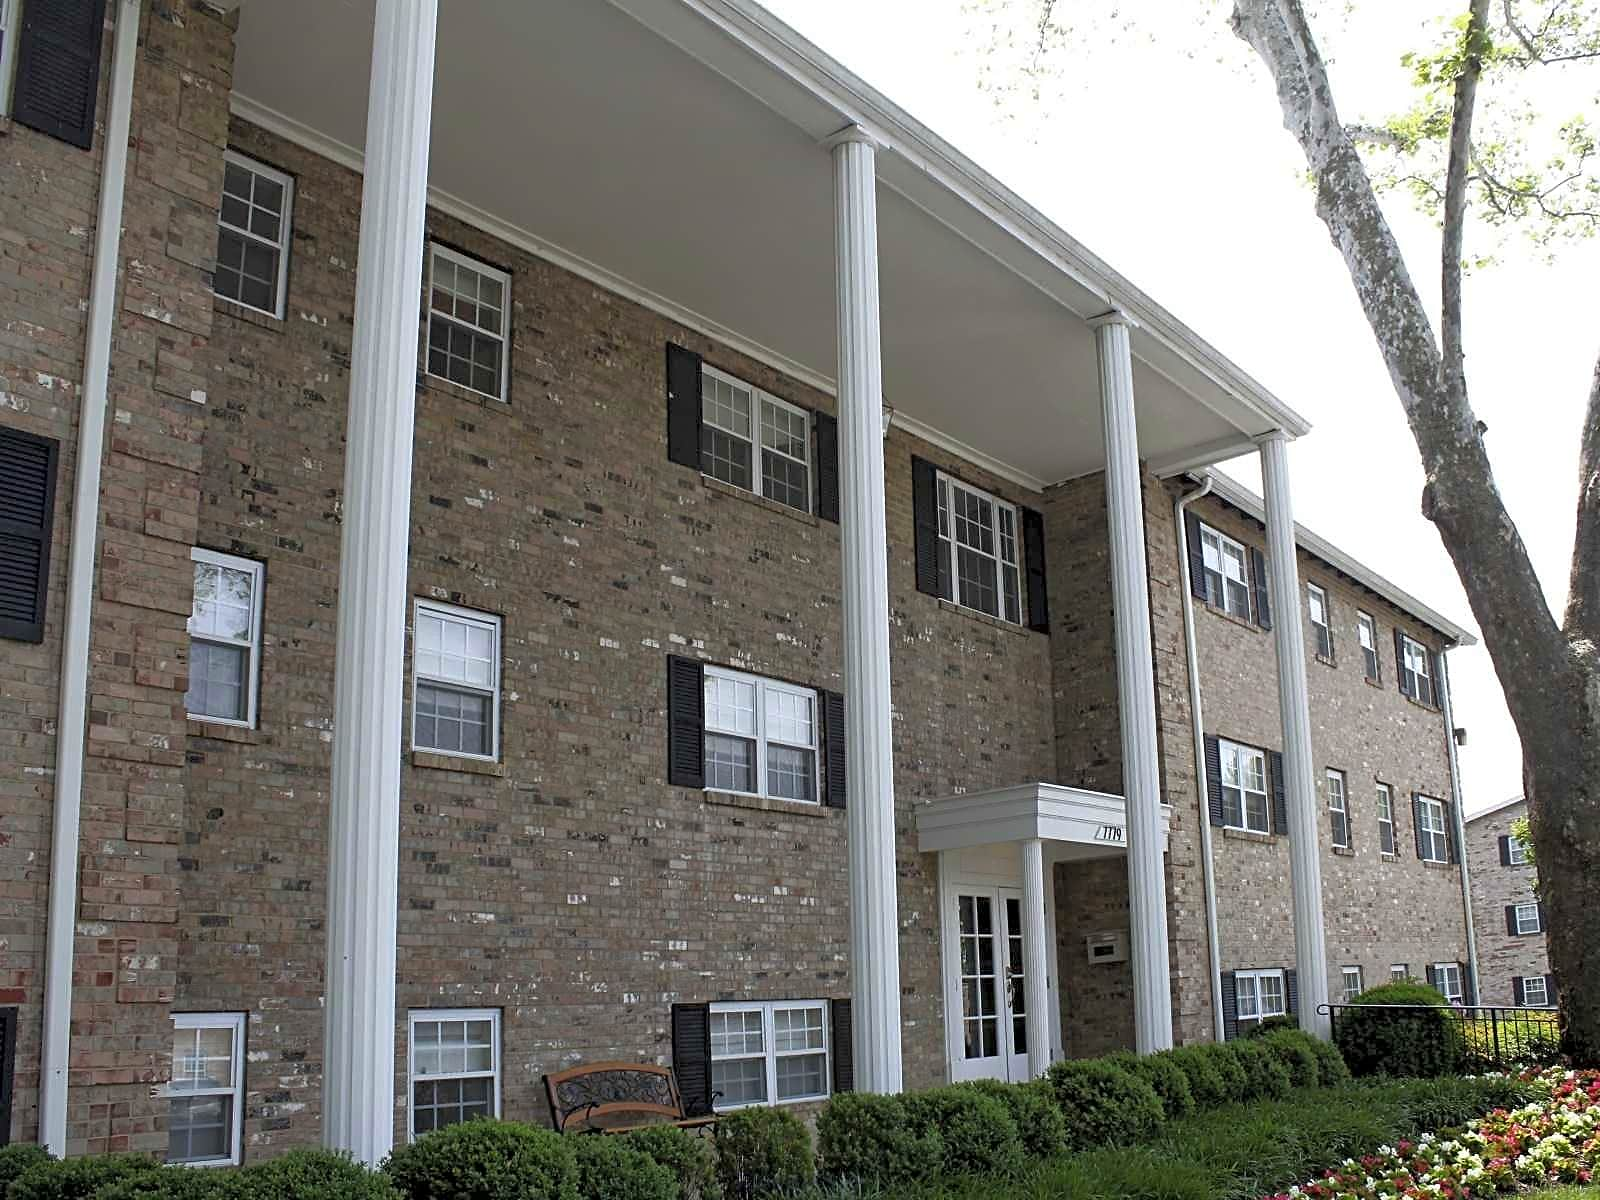 Photo: Glen Burnie Apartment for Rent - $1452.00 / month; 3 Bd & 1 Ba